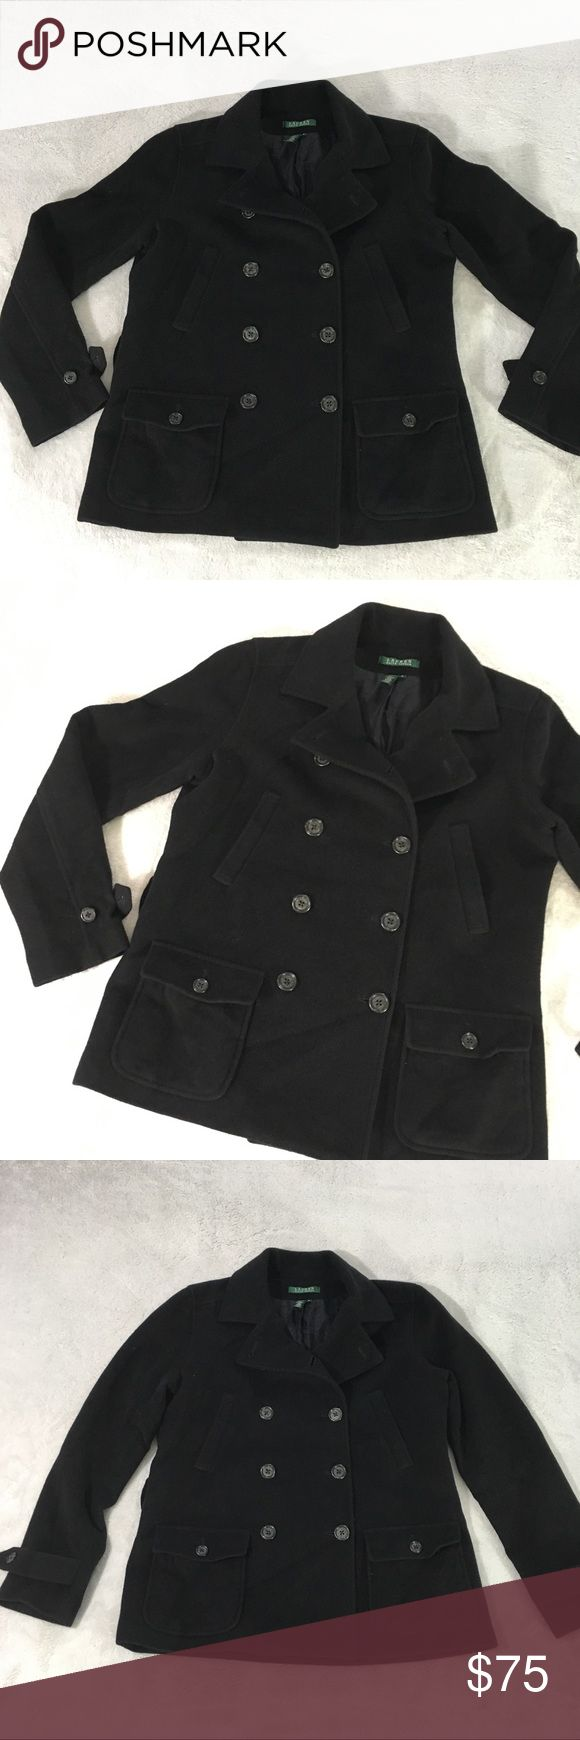 """Ralph Lauren Black Pea Coat Size Medium Ralph Lauren black pea coat. Button close deep  pockets in front. 80% wool 20% angora outside   Top two slide pockets outside both still sewn shut.   Approximate measurements when laying flat are:  20.5"""" across bust front 24.5"""""""" arm sleeve length 26"""" length down the back of peacoat Lauren Ralph Lauren Jackets & Coats Pea Coats"""